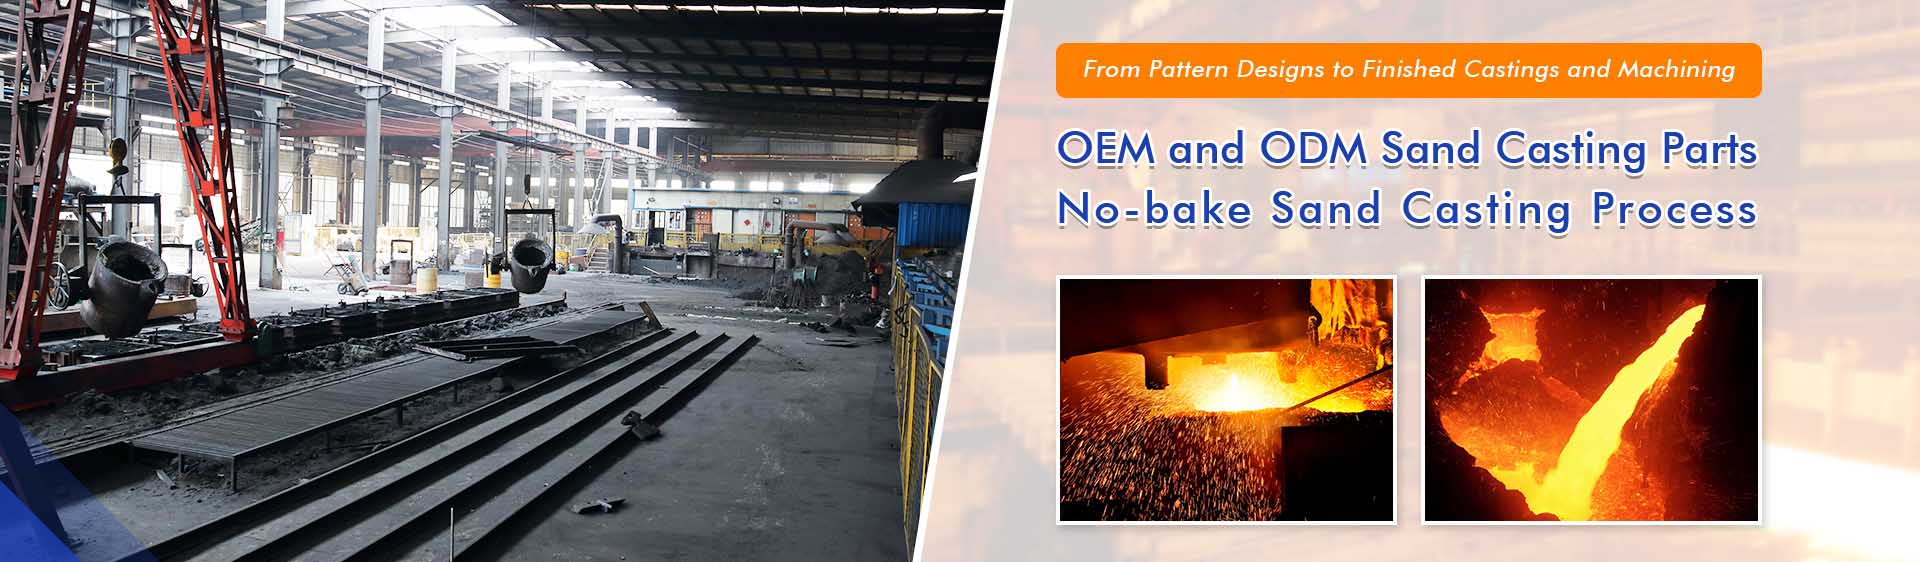 Gray and Ductile Iron Sand Casting Foundry